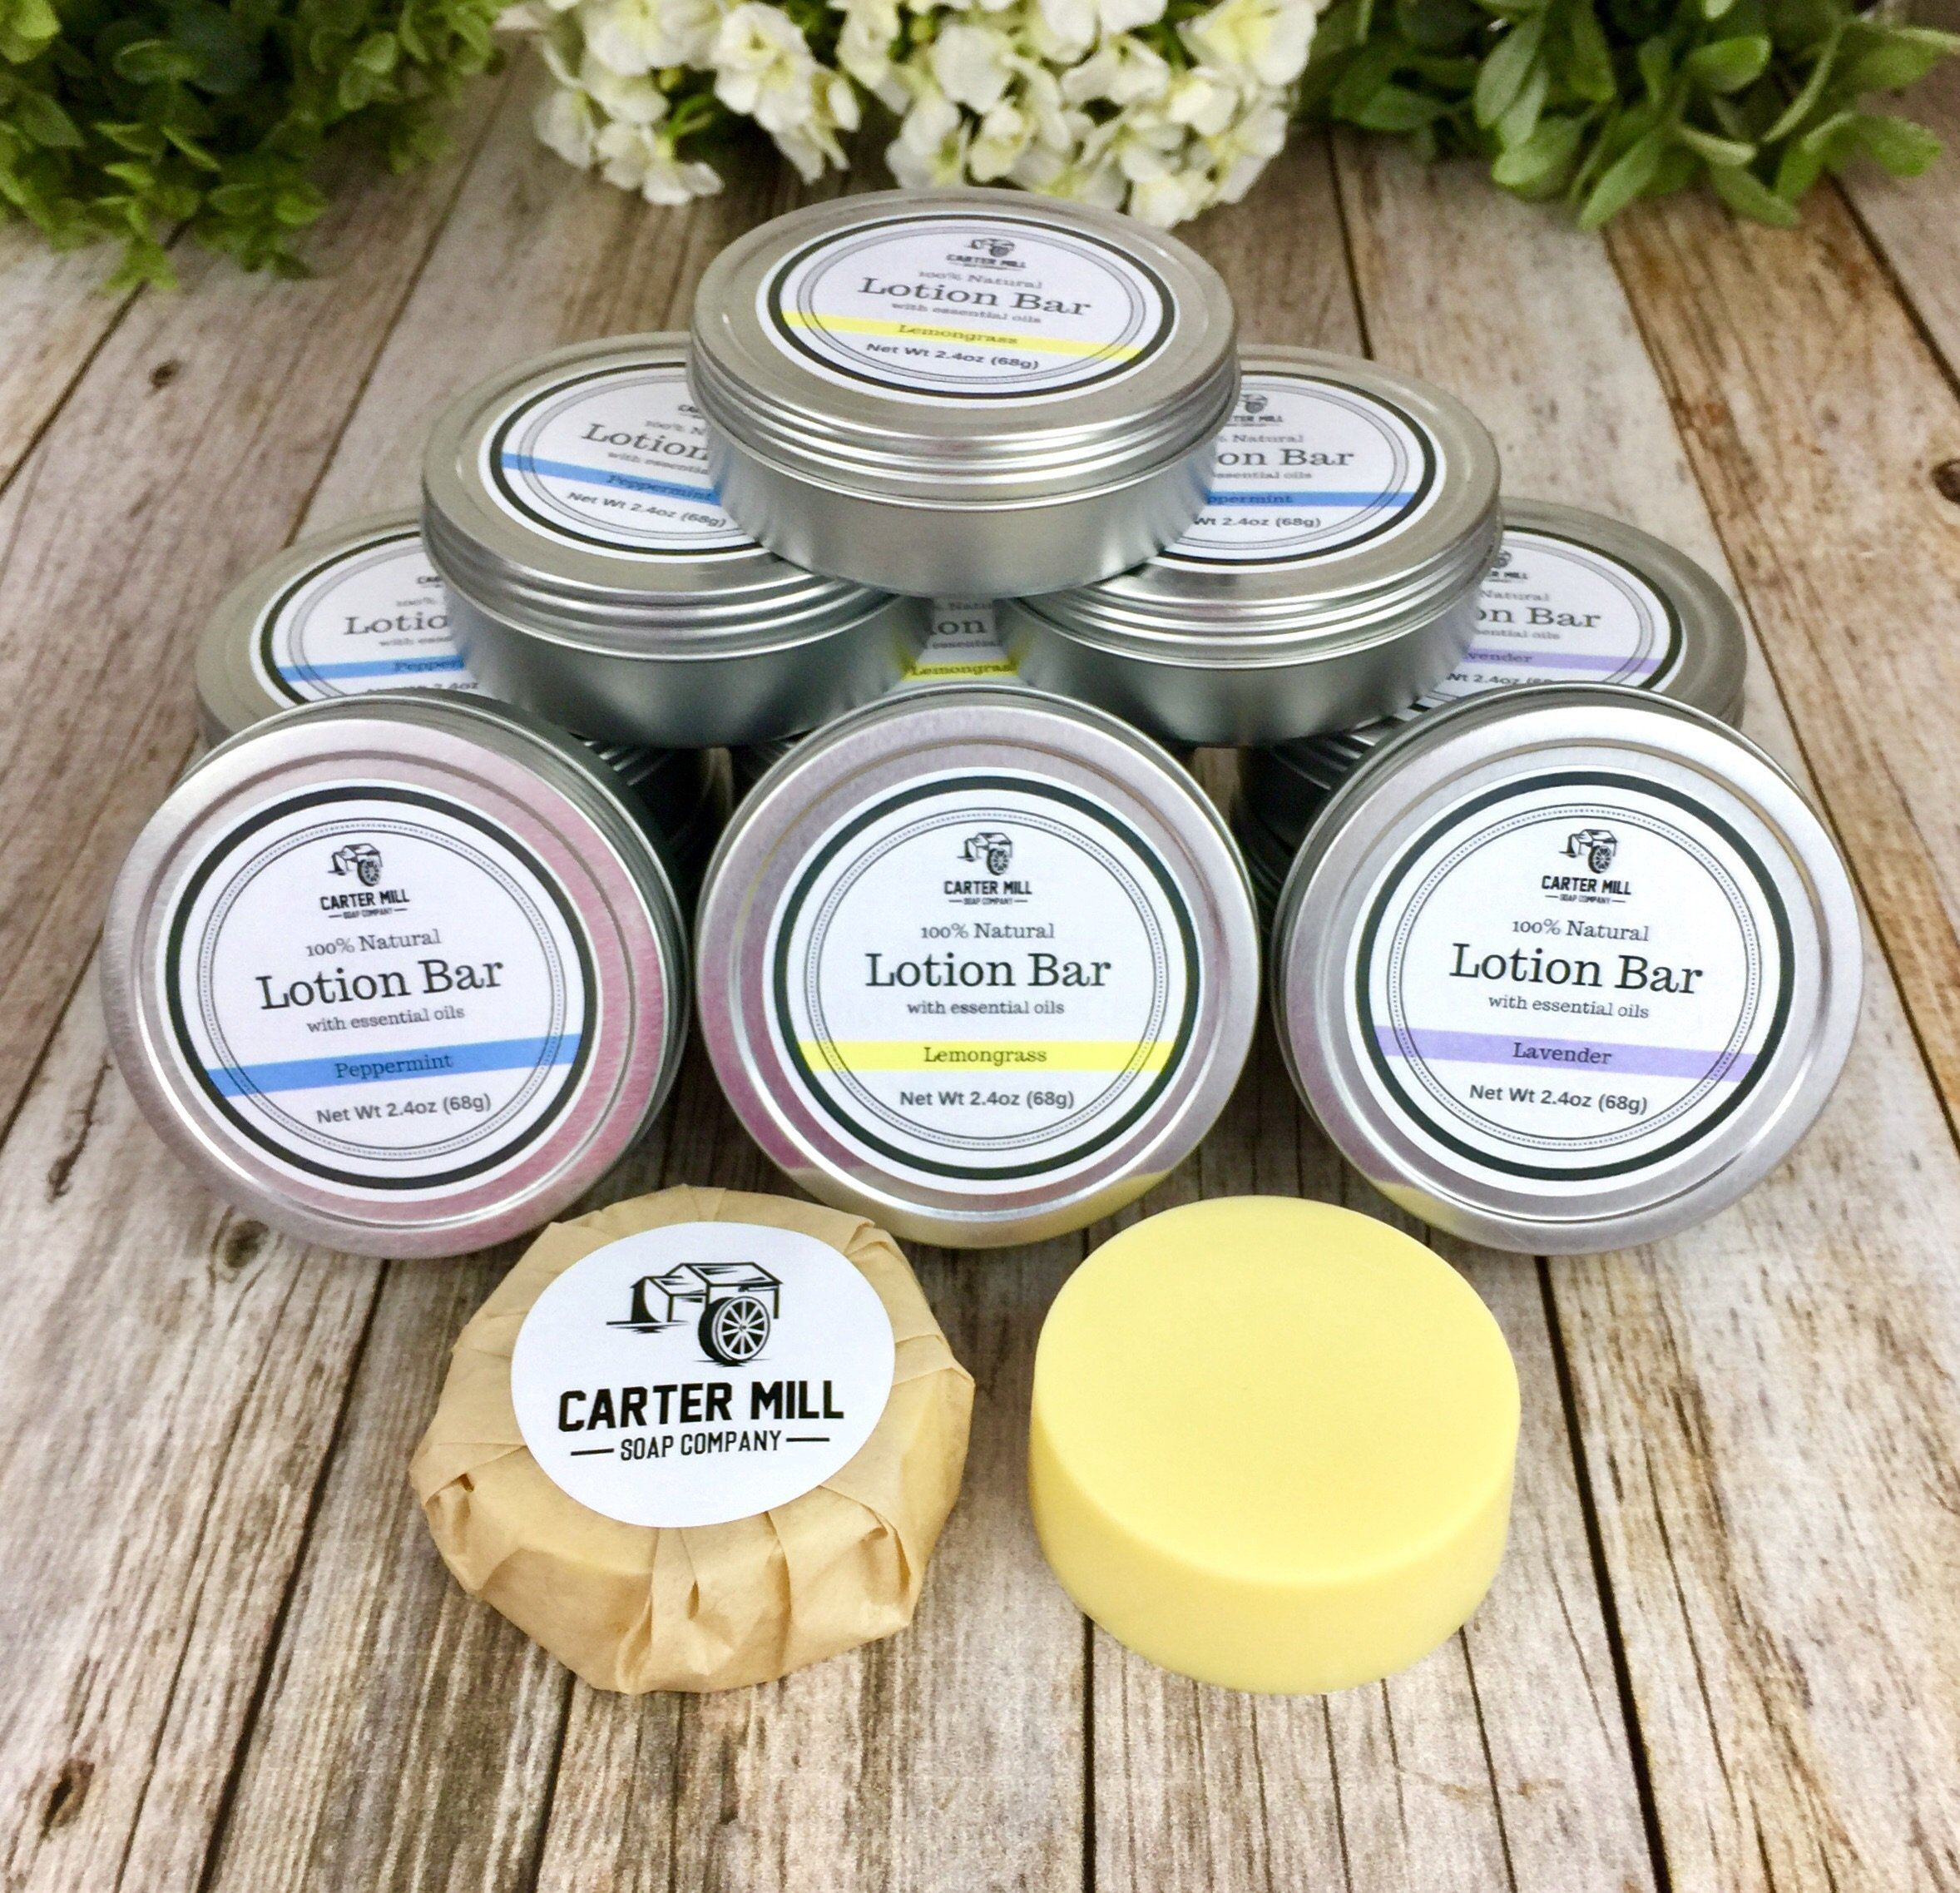 Carter Mill Soap Company Lotion Bar with Shea Butter